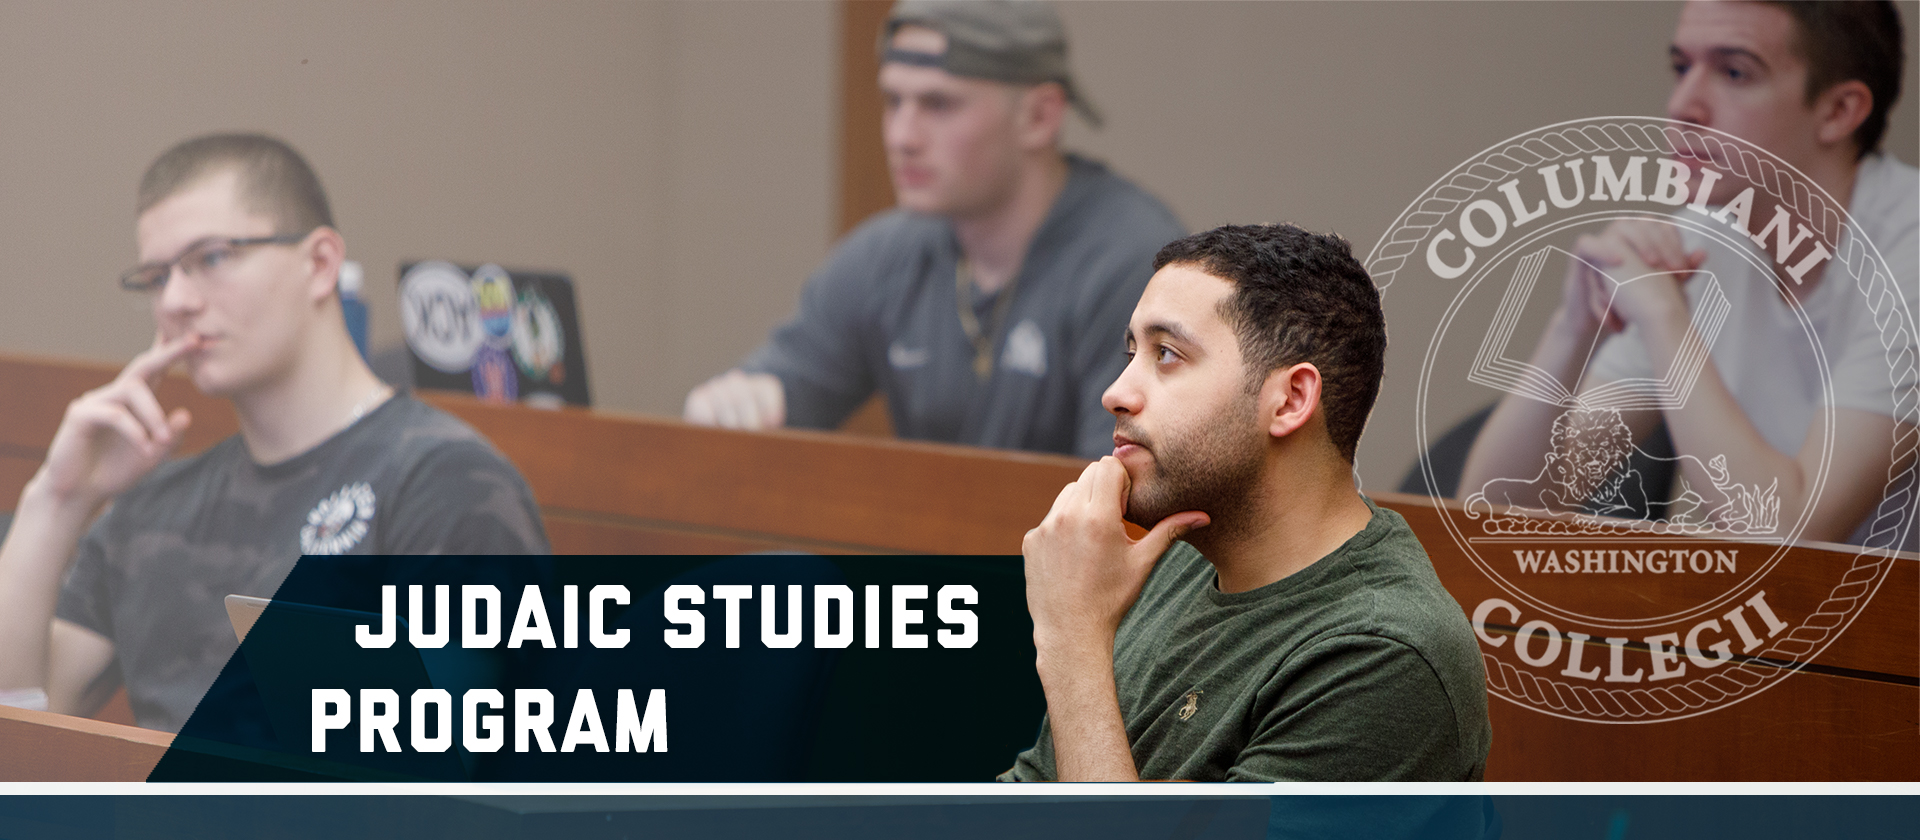 Judaic Studies Program, Columbianii Collegii seal. Image of a male student in the foreground & 3 male students in the background